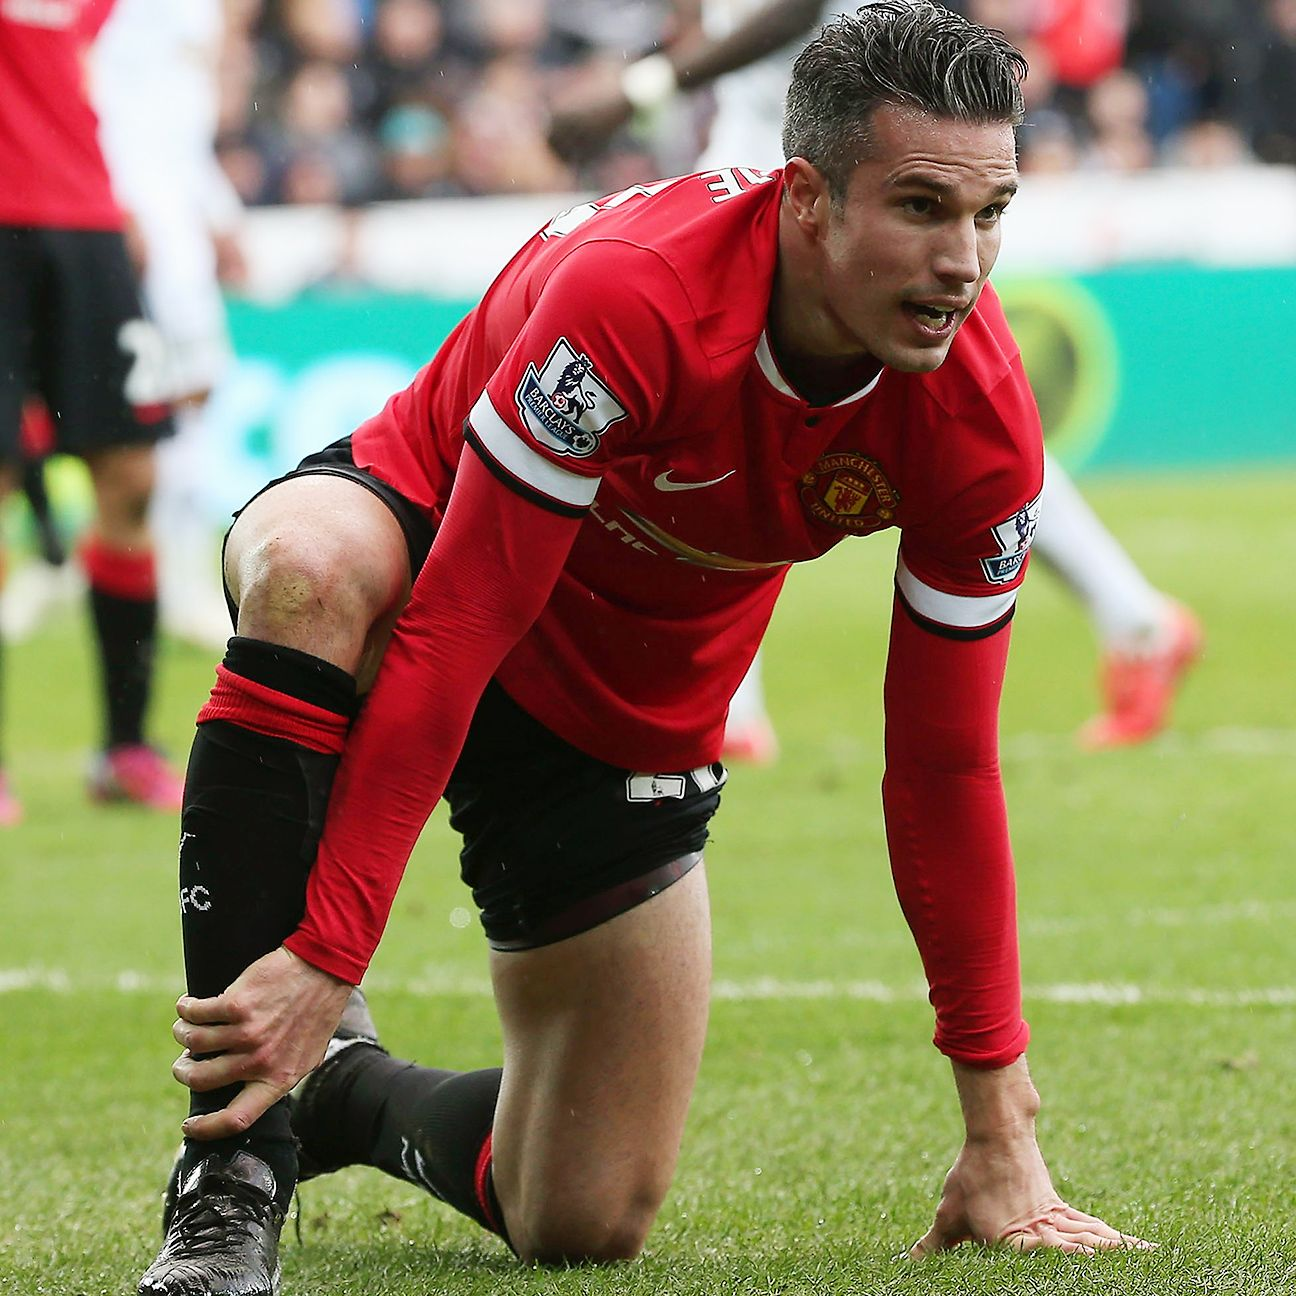 Robin van Persie's injury struggles continued after going down last week at Swansea.